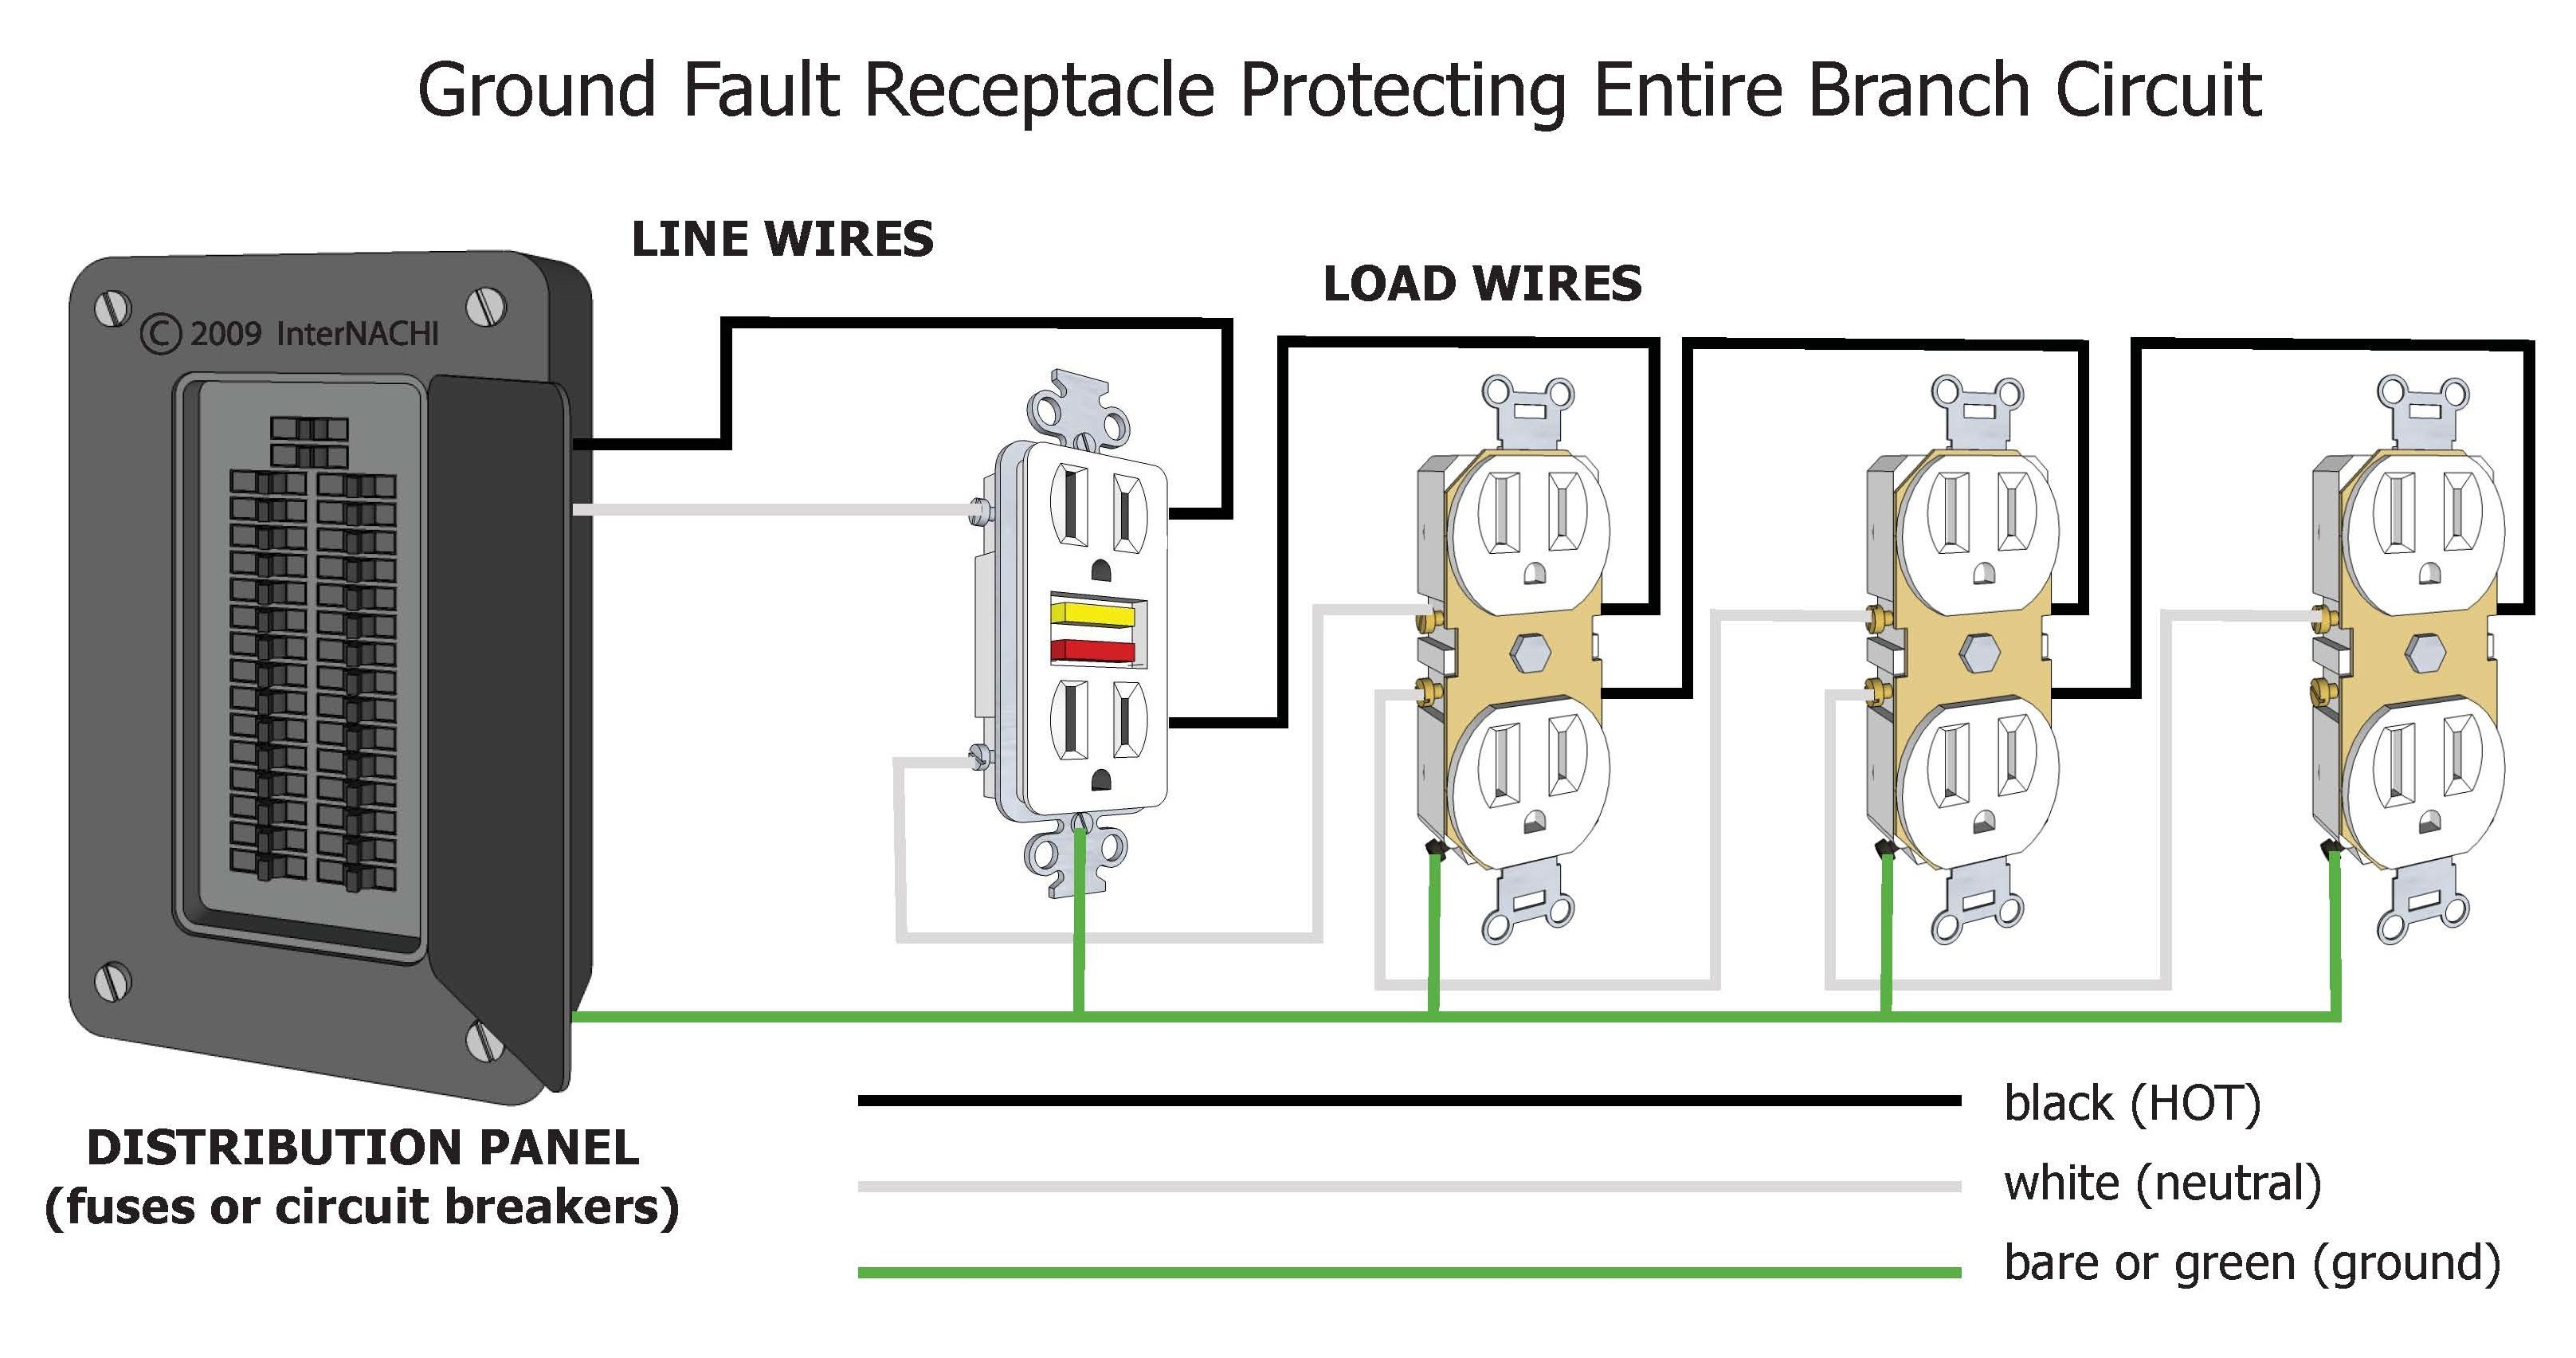 gfci branch circuit color gfci circuit breaker wiring diagram efcaviation com gfci wiring diagram at crackthecode.co